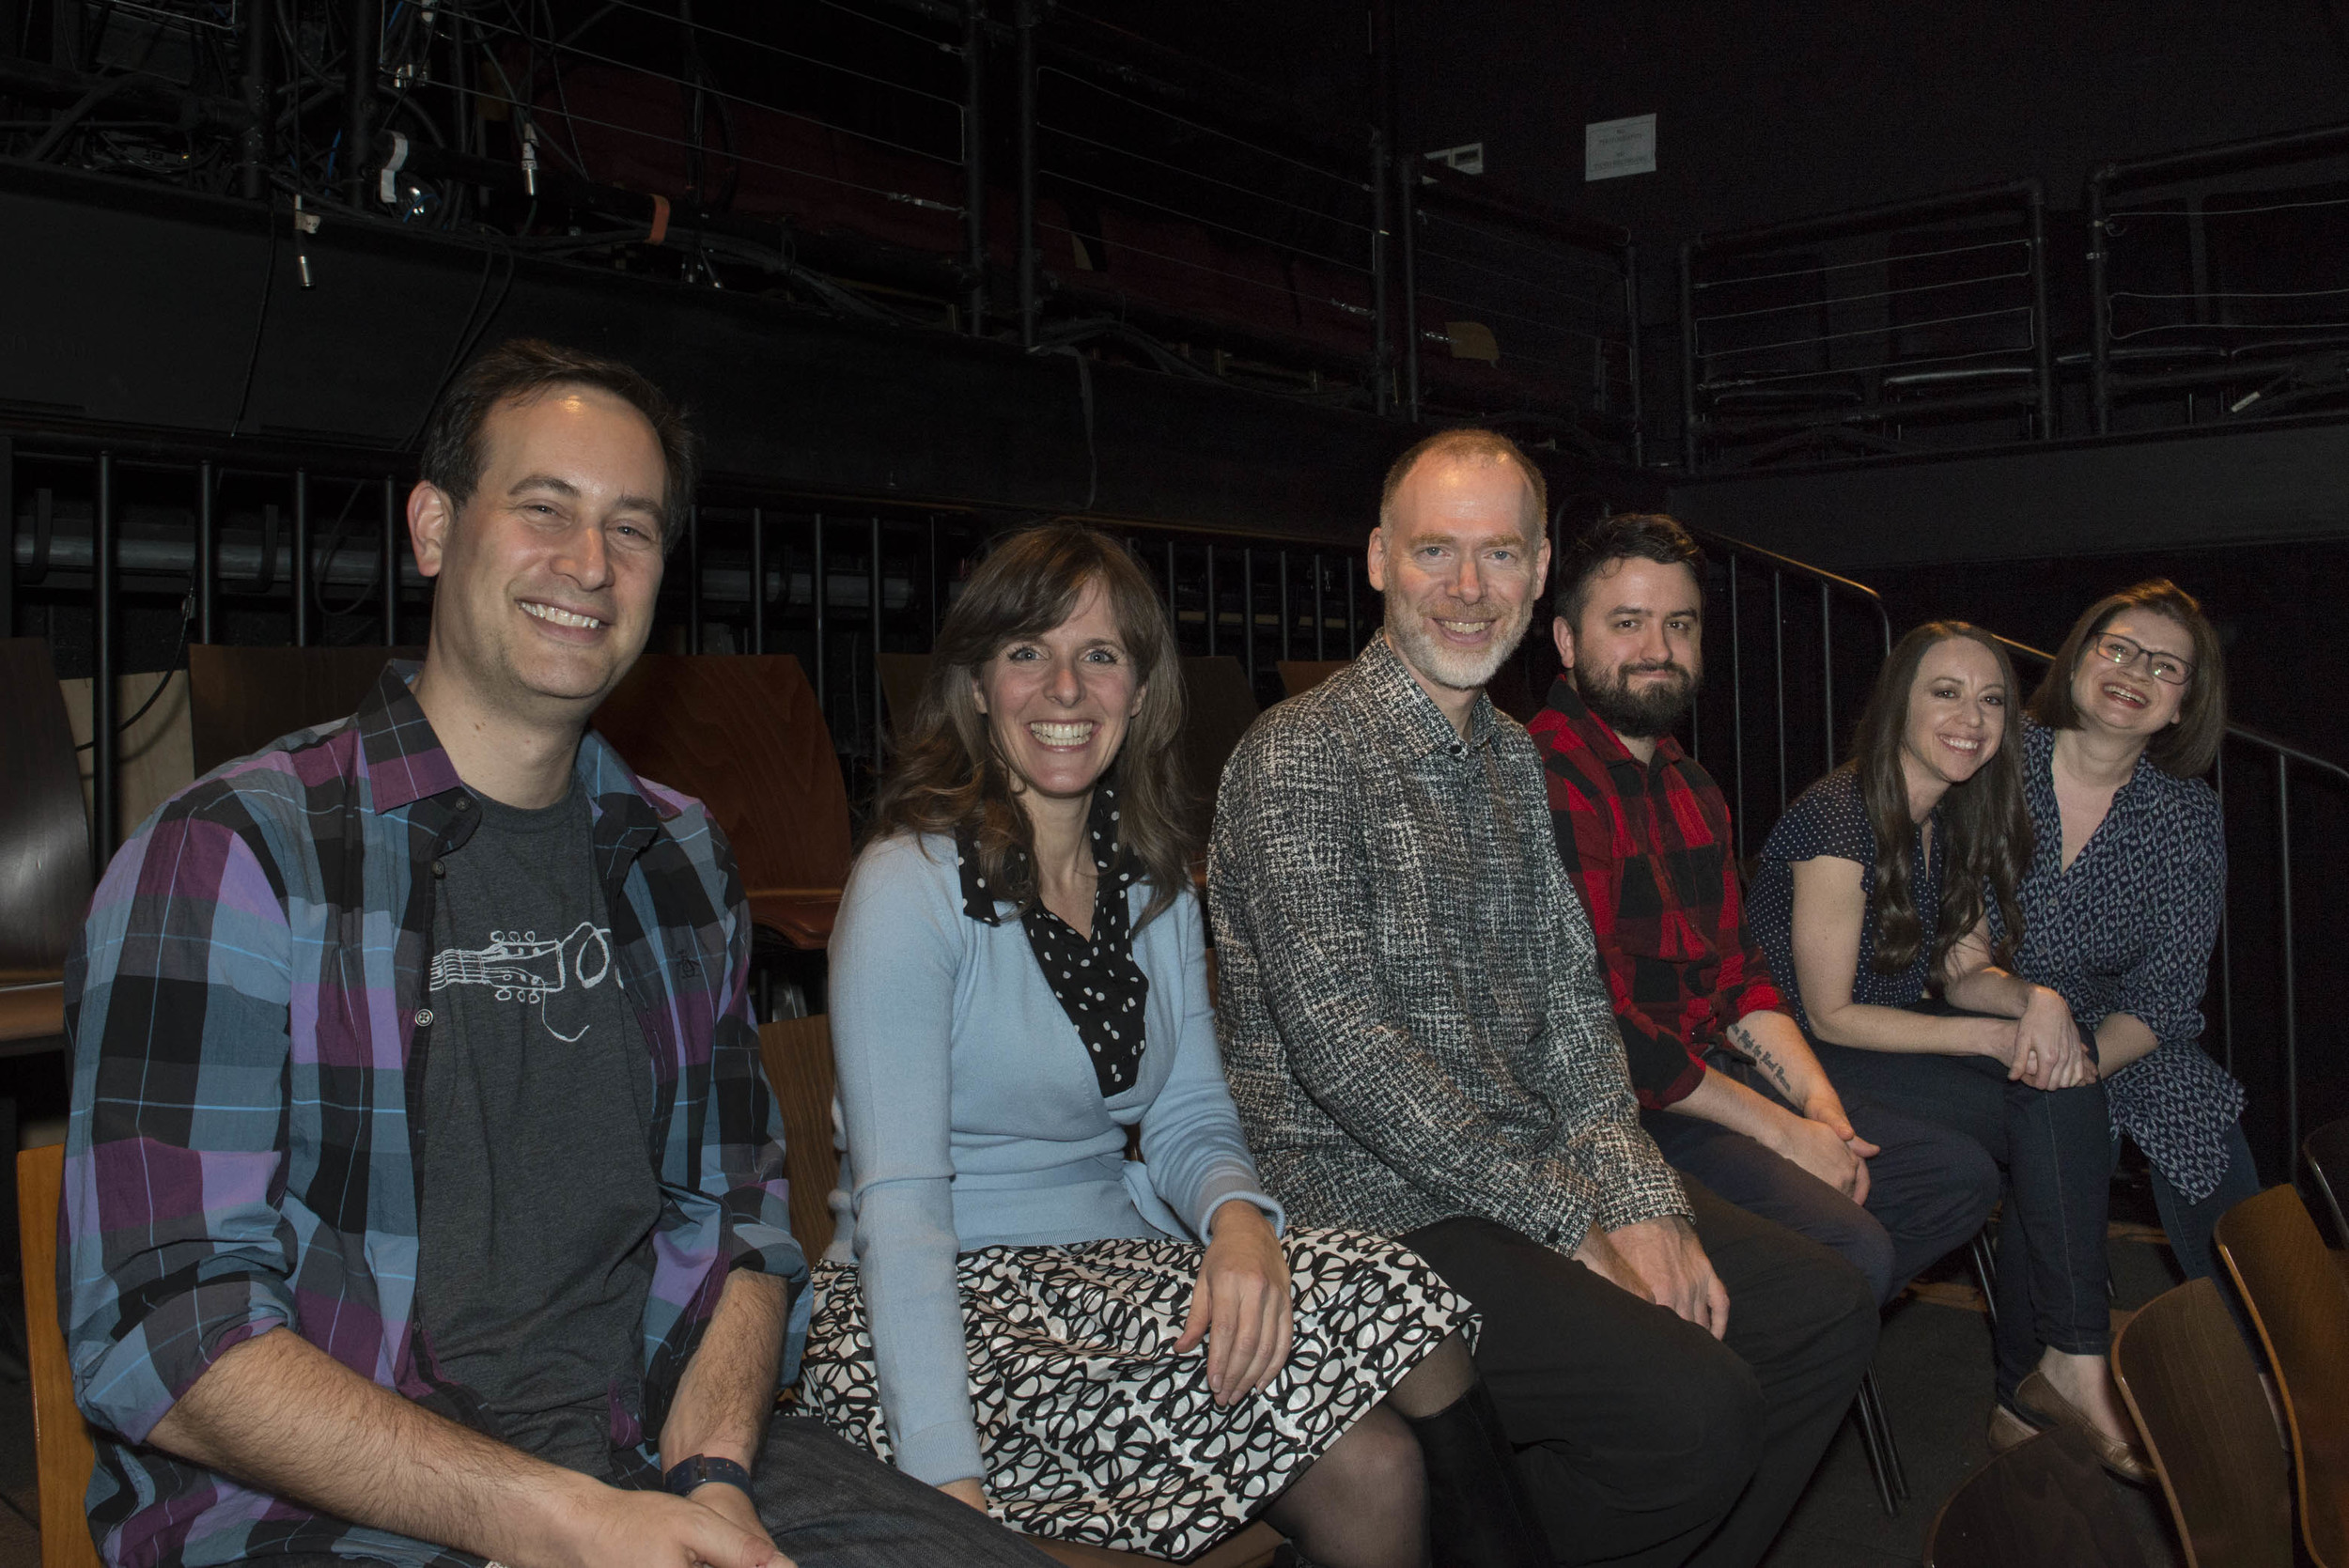 The Cast of our show on March 17th, 2016 - David Levithan, VC Chickering, Scott Westerfeld, David Arnold, Jessica Brody and you-know-who.